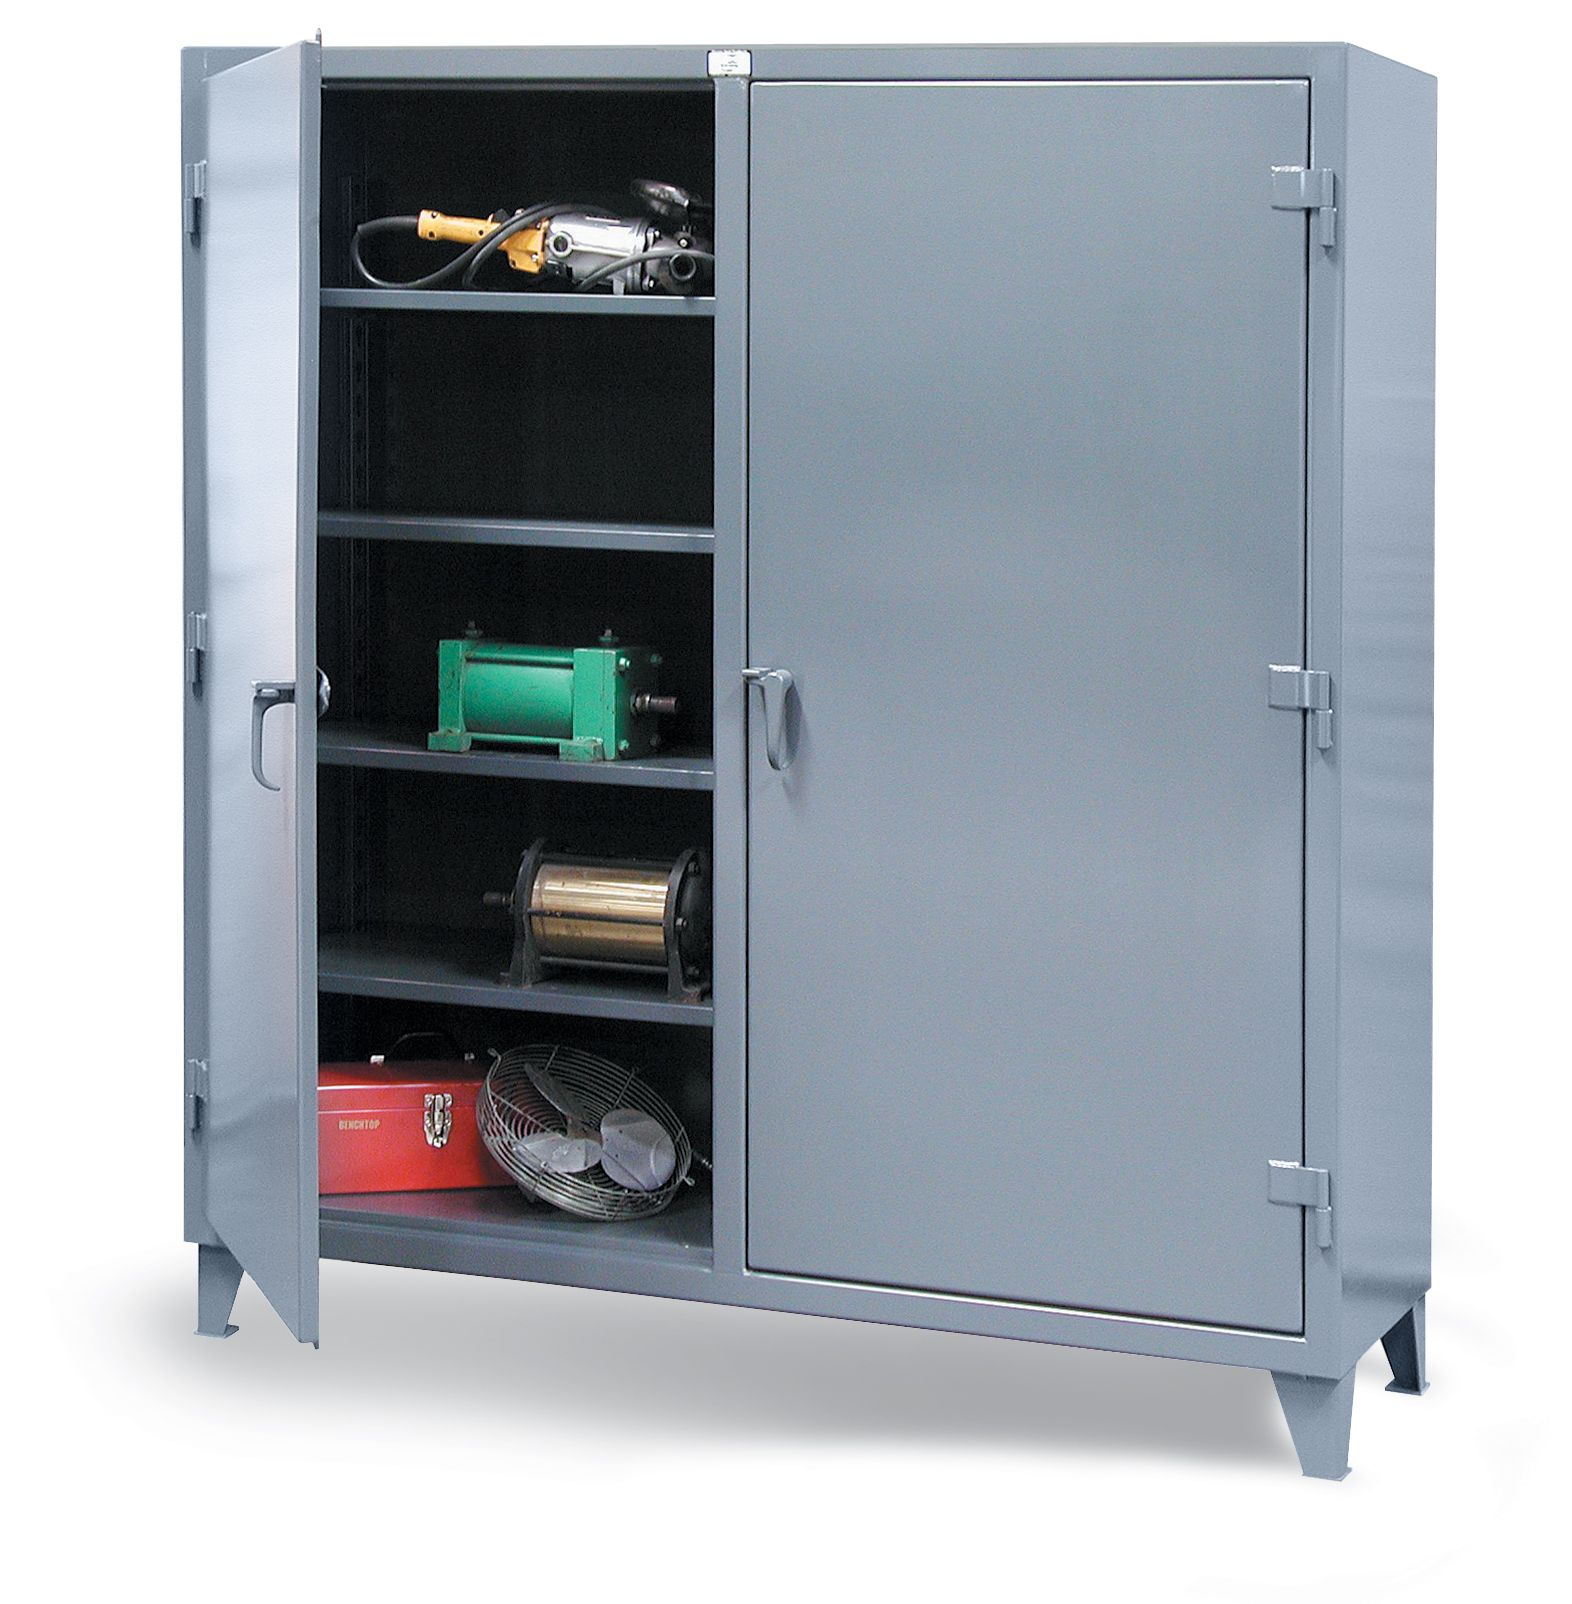 Storage Cabinet With Locking Doors Double Shift Cabinet Our Heavy Duty 12 Gauge Double Shift